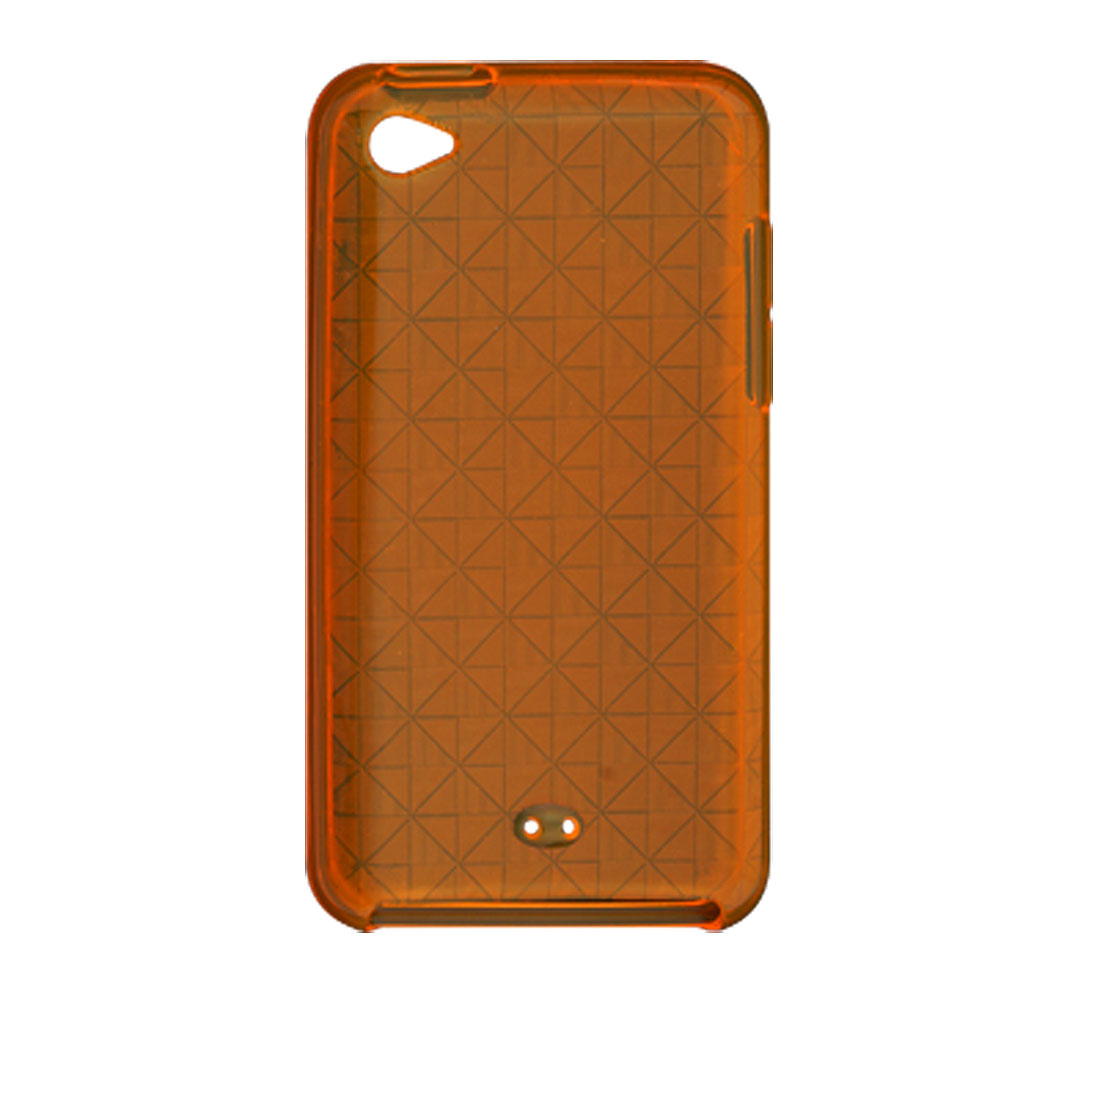 Clear Orange Soft Plastic Argyle Back Case for iPod Touch 4G